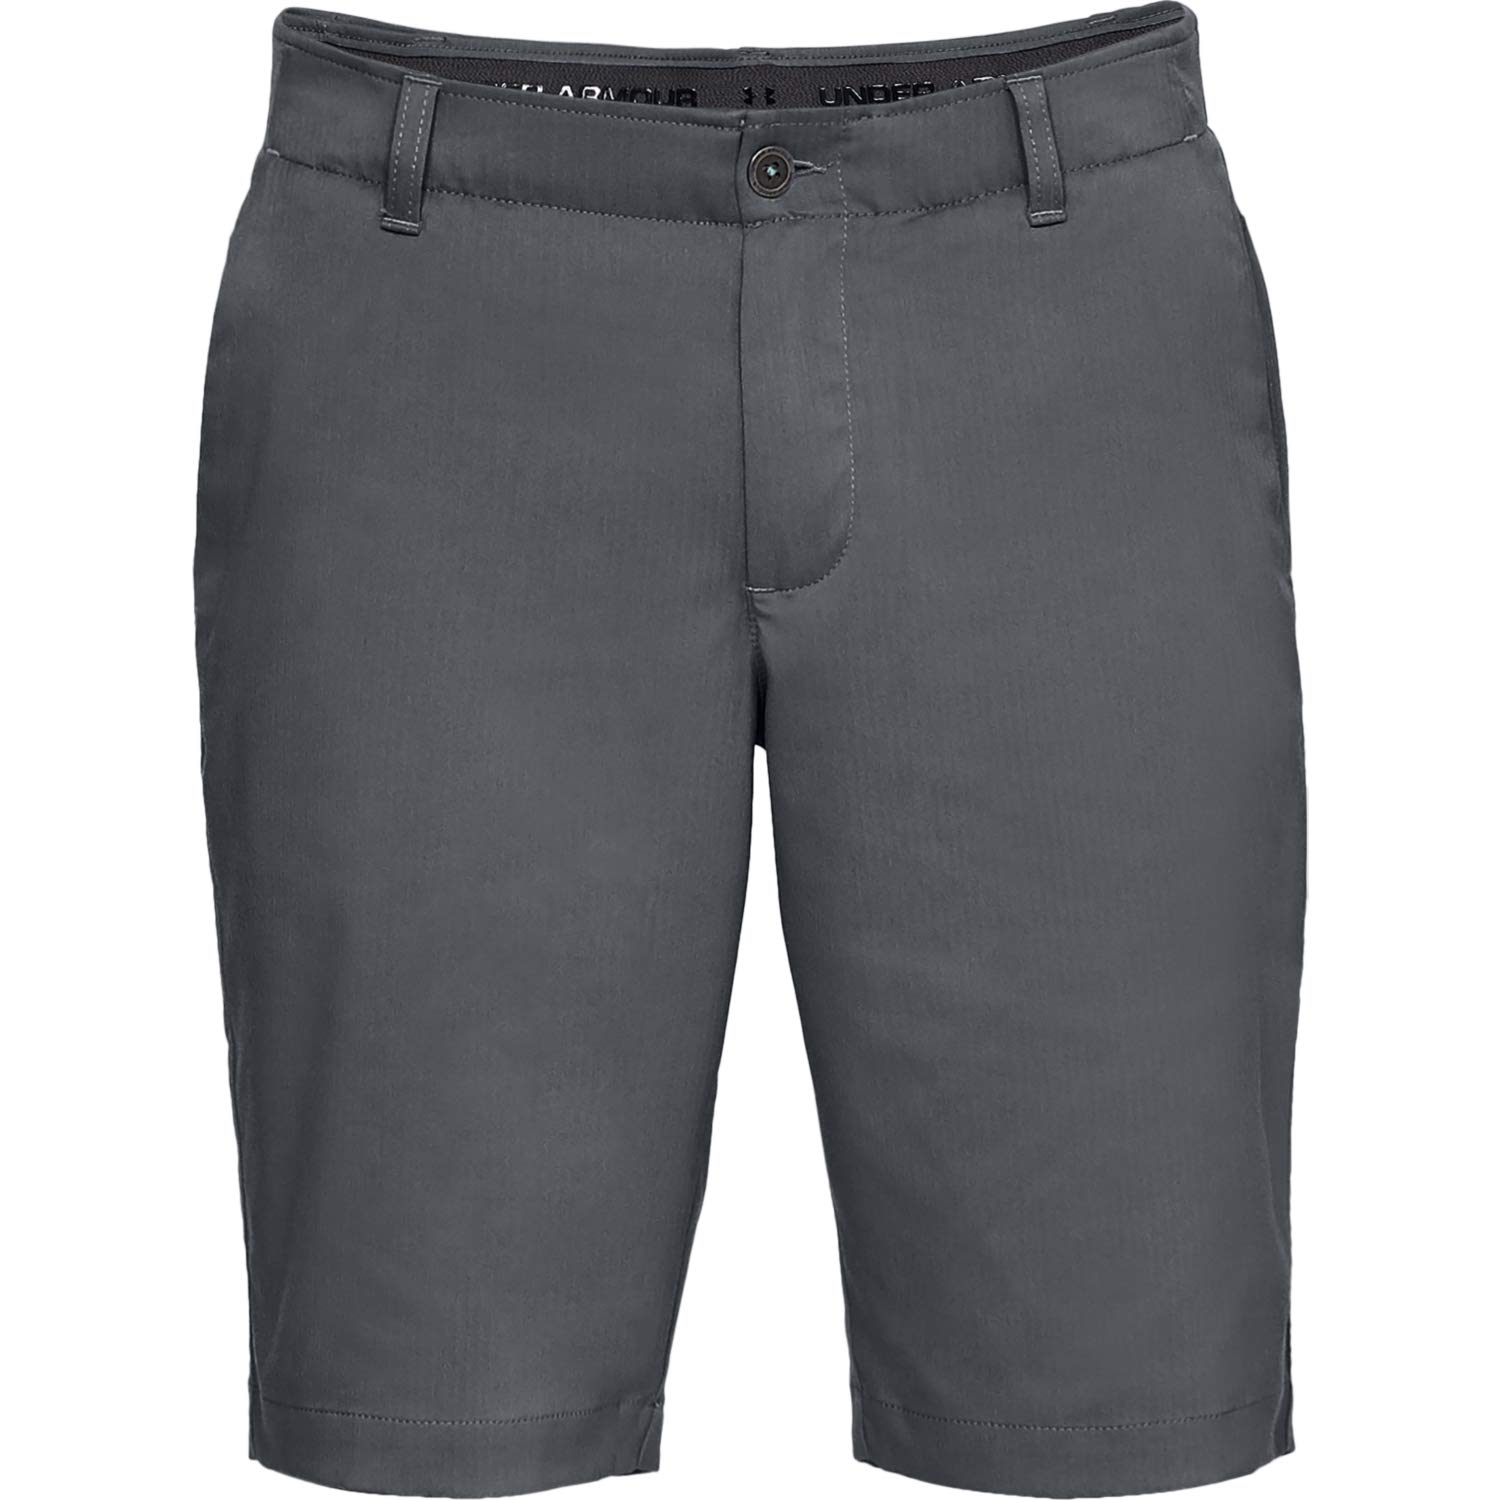 Under Armour Men's Showdown Tapered Golf Shorts, (012)/Pitch Gray, 34 by Under Armour